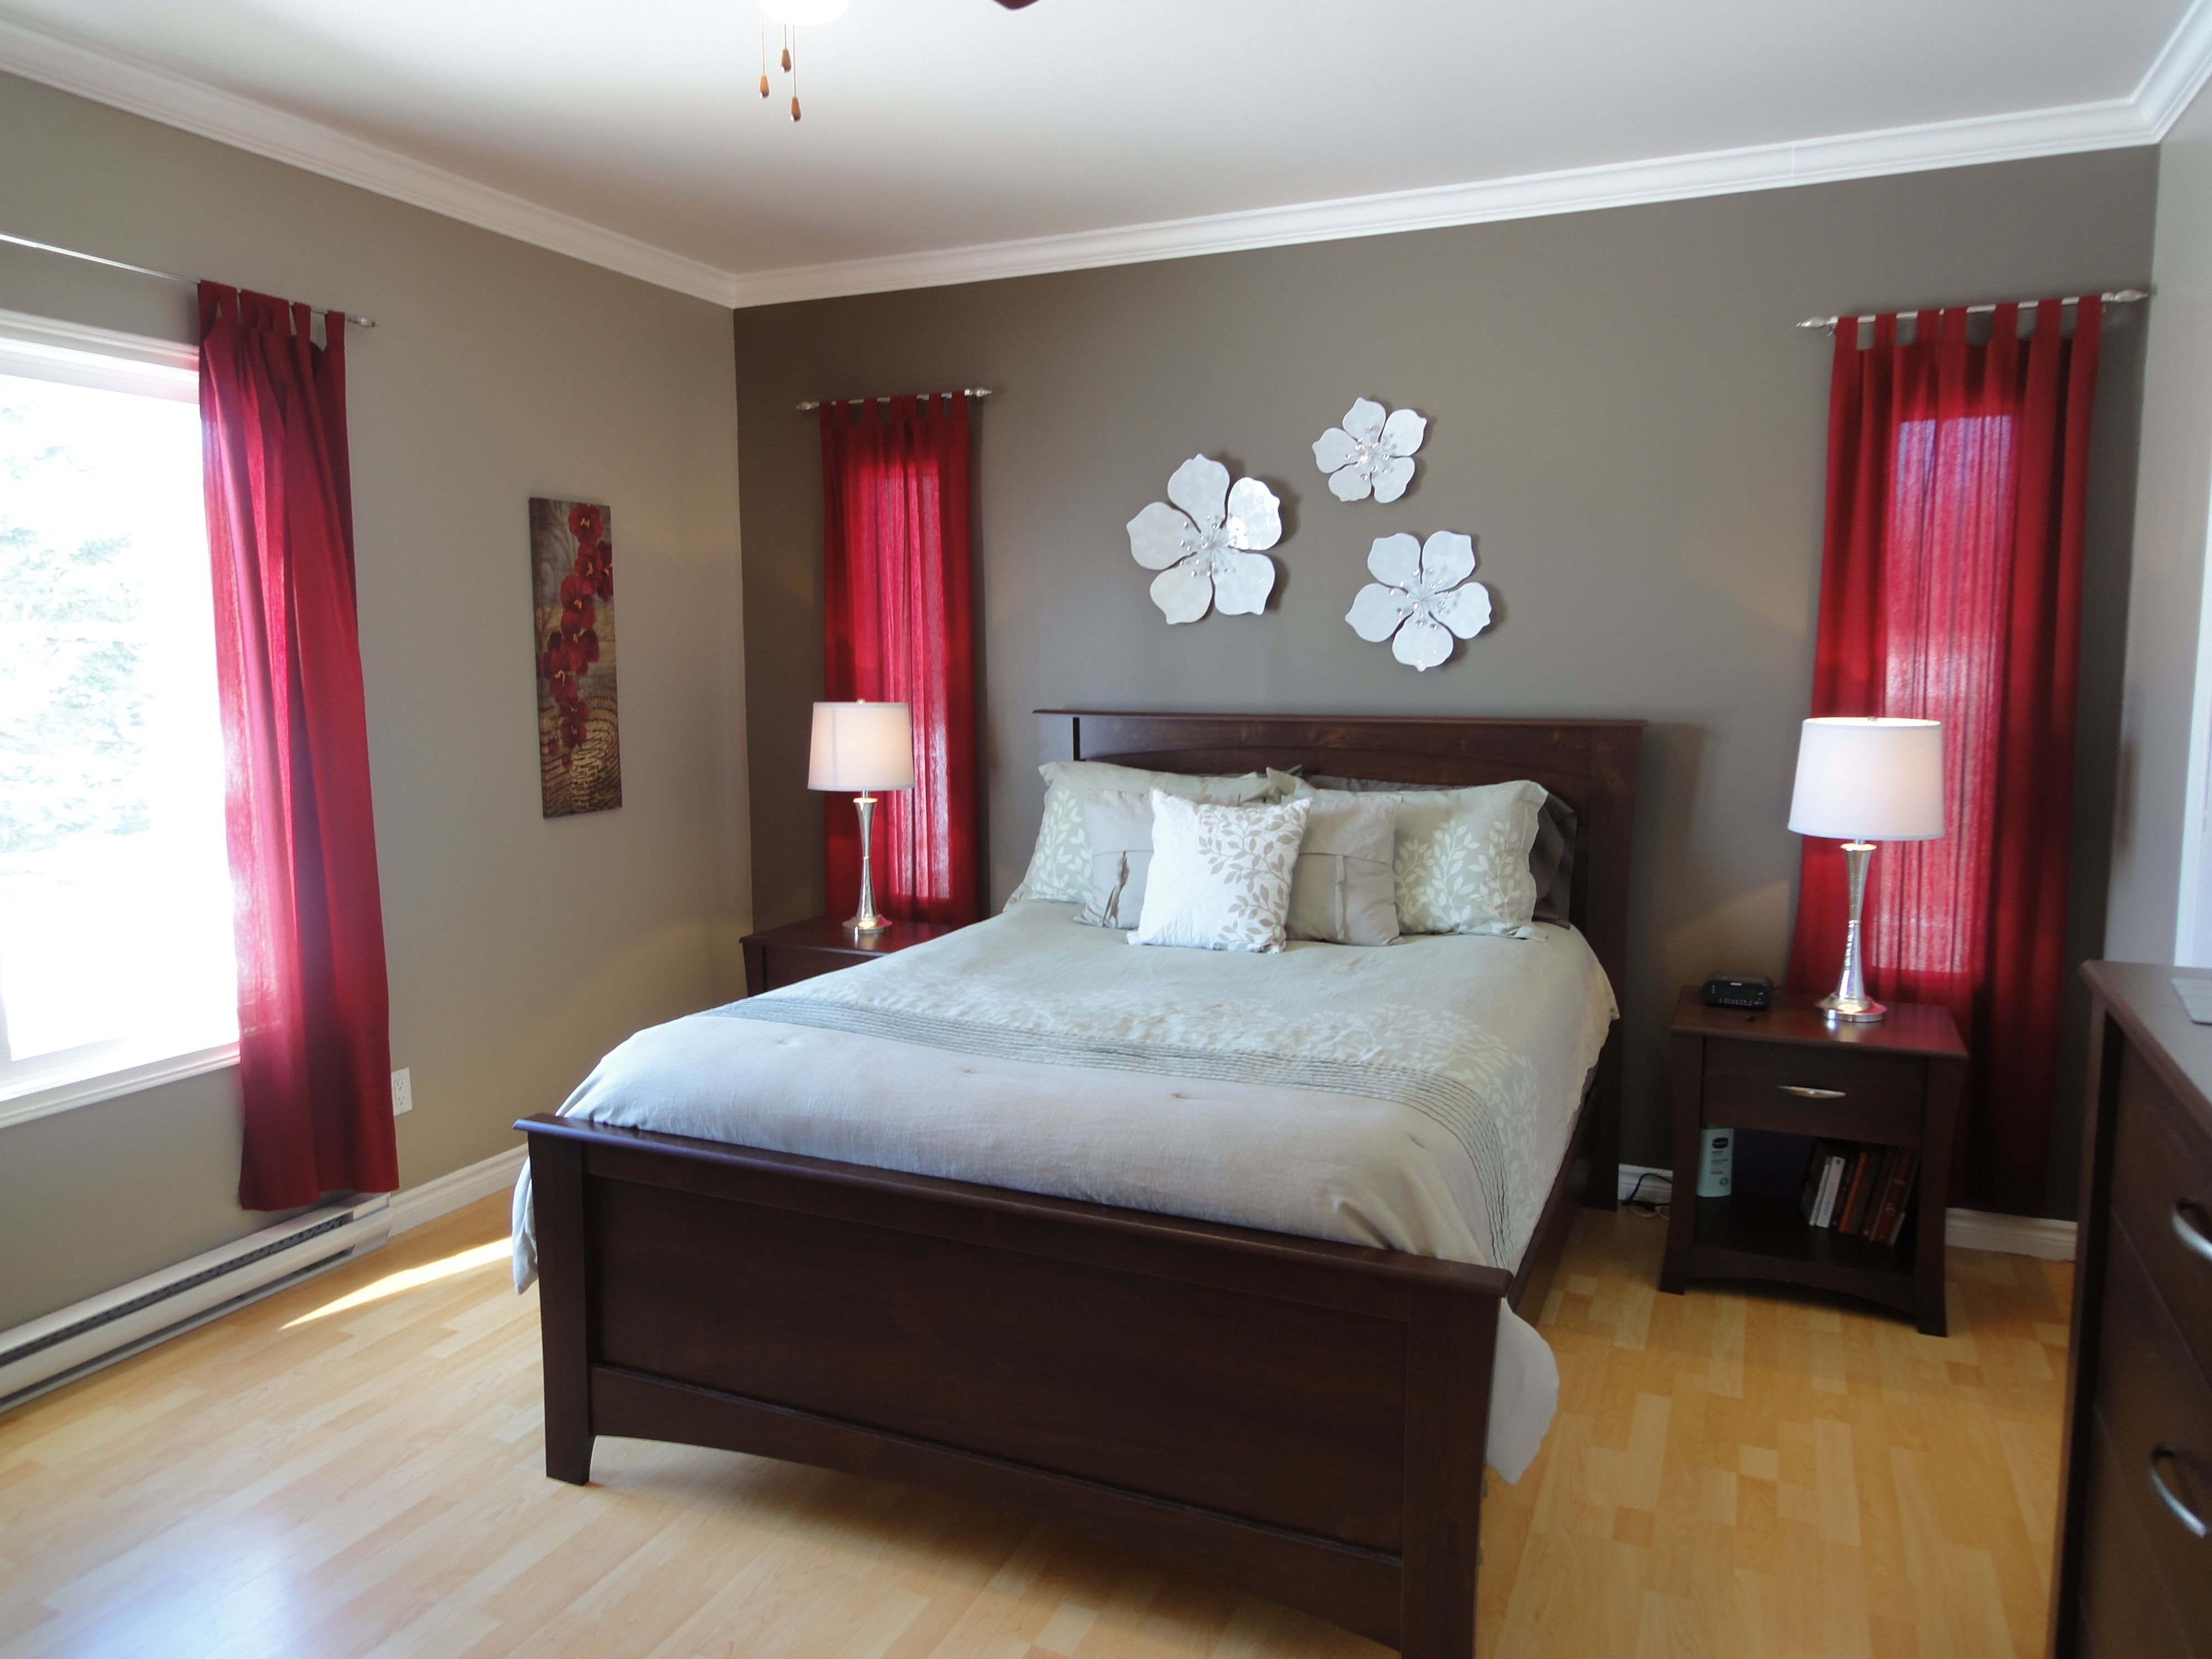 Burgundy and Gray Bedroom New I Just Decorated Our Guest Bedroom with Red Accents I Would